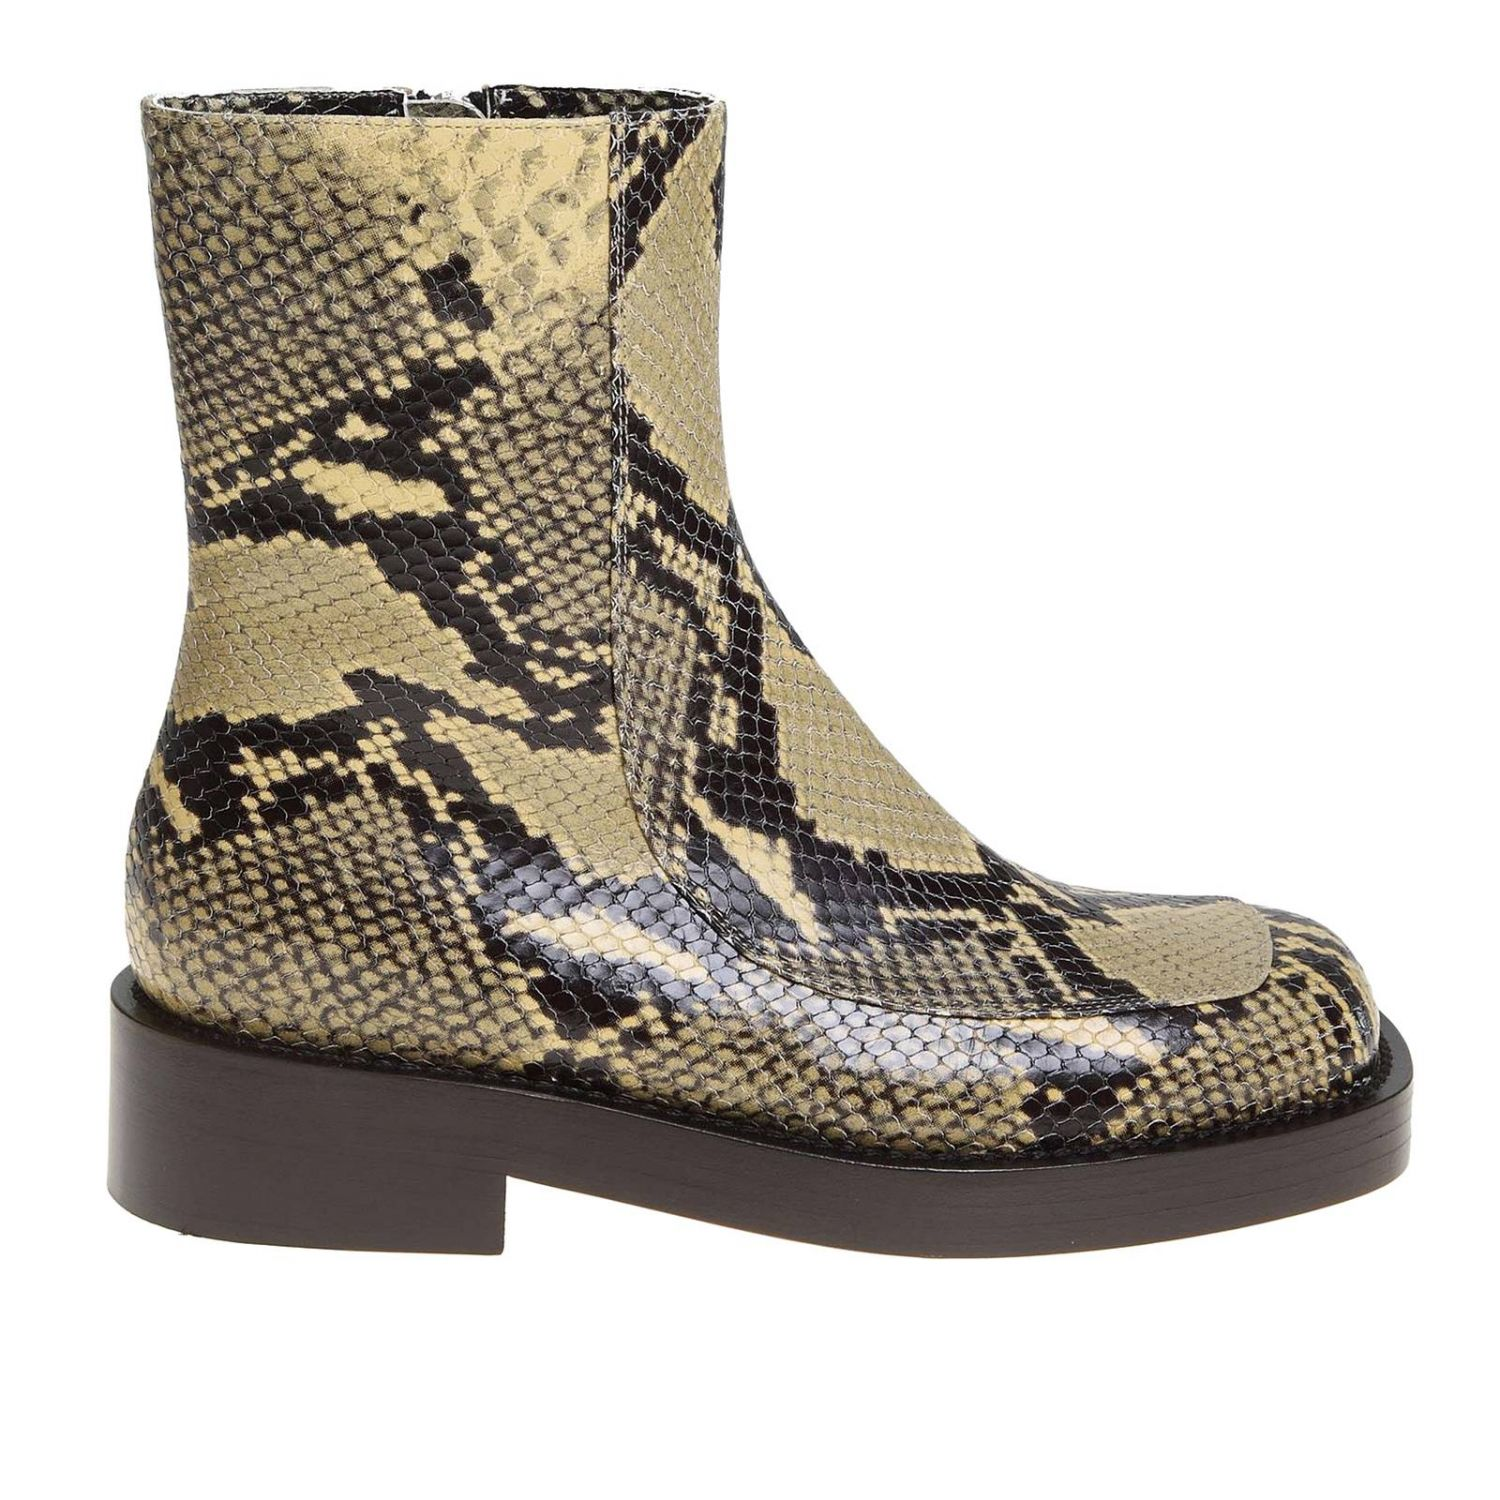 Marni Ankle Boots In Python Print Leather With Piercing Flat